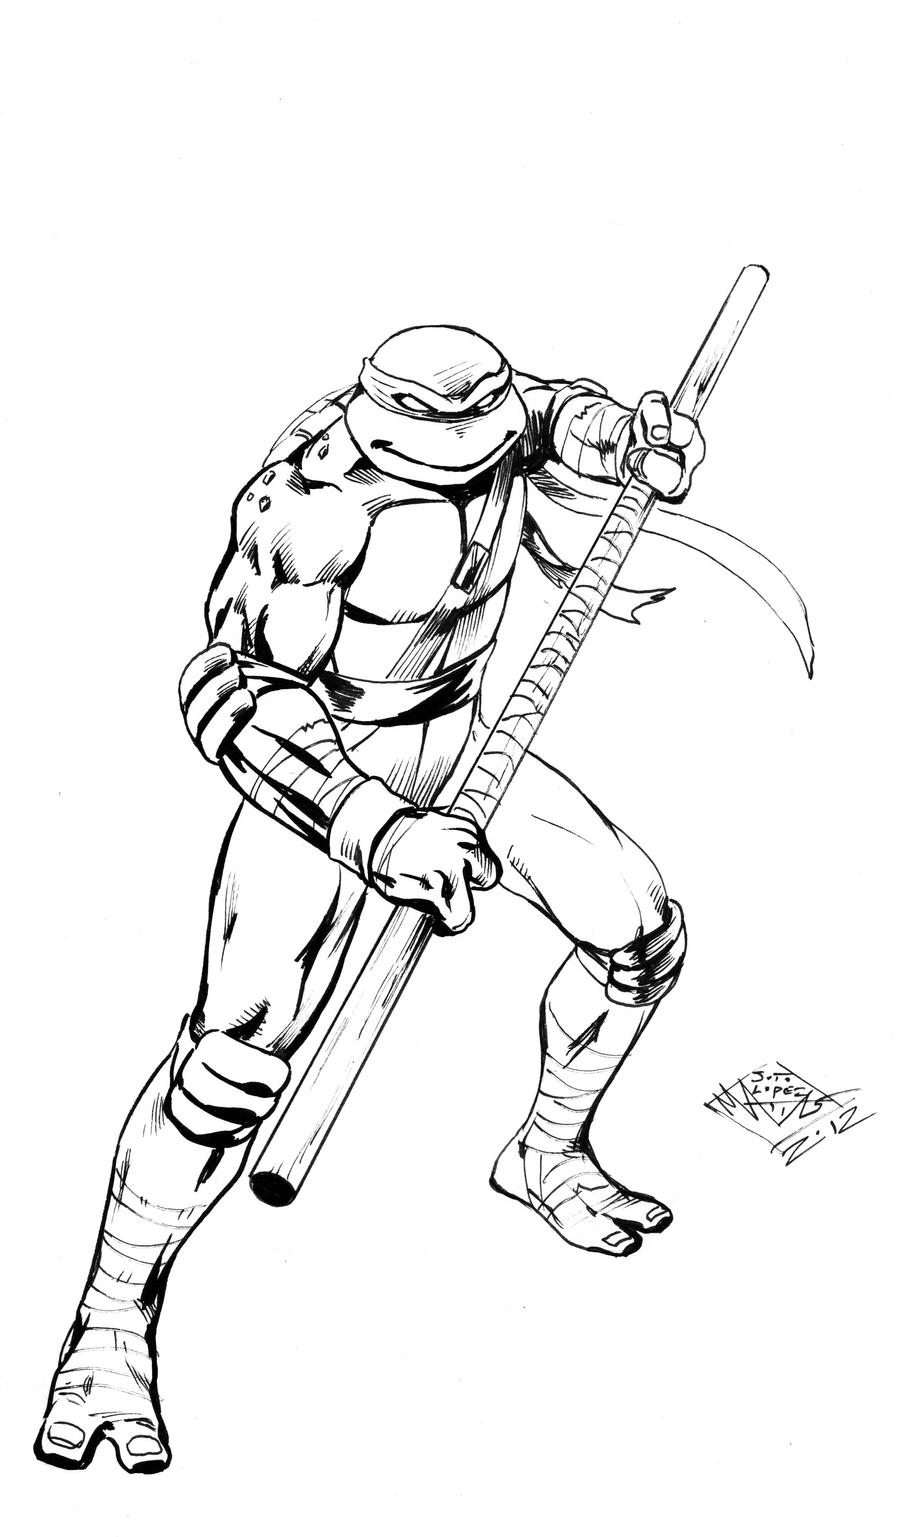 ninja turtles coloring pages - tmnt donatello by matiassoto on deviantart